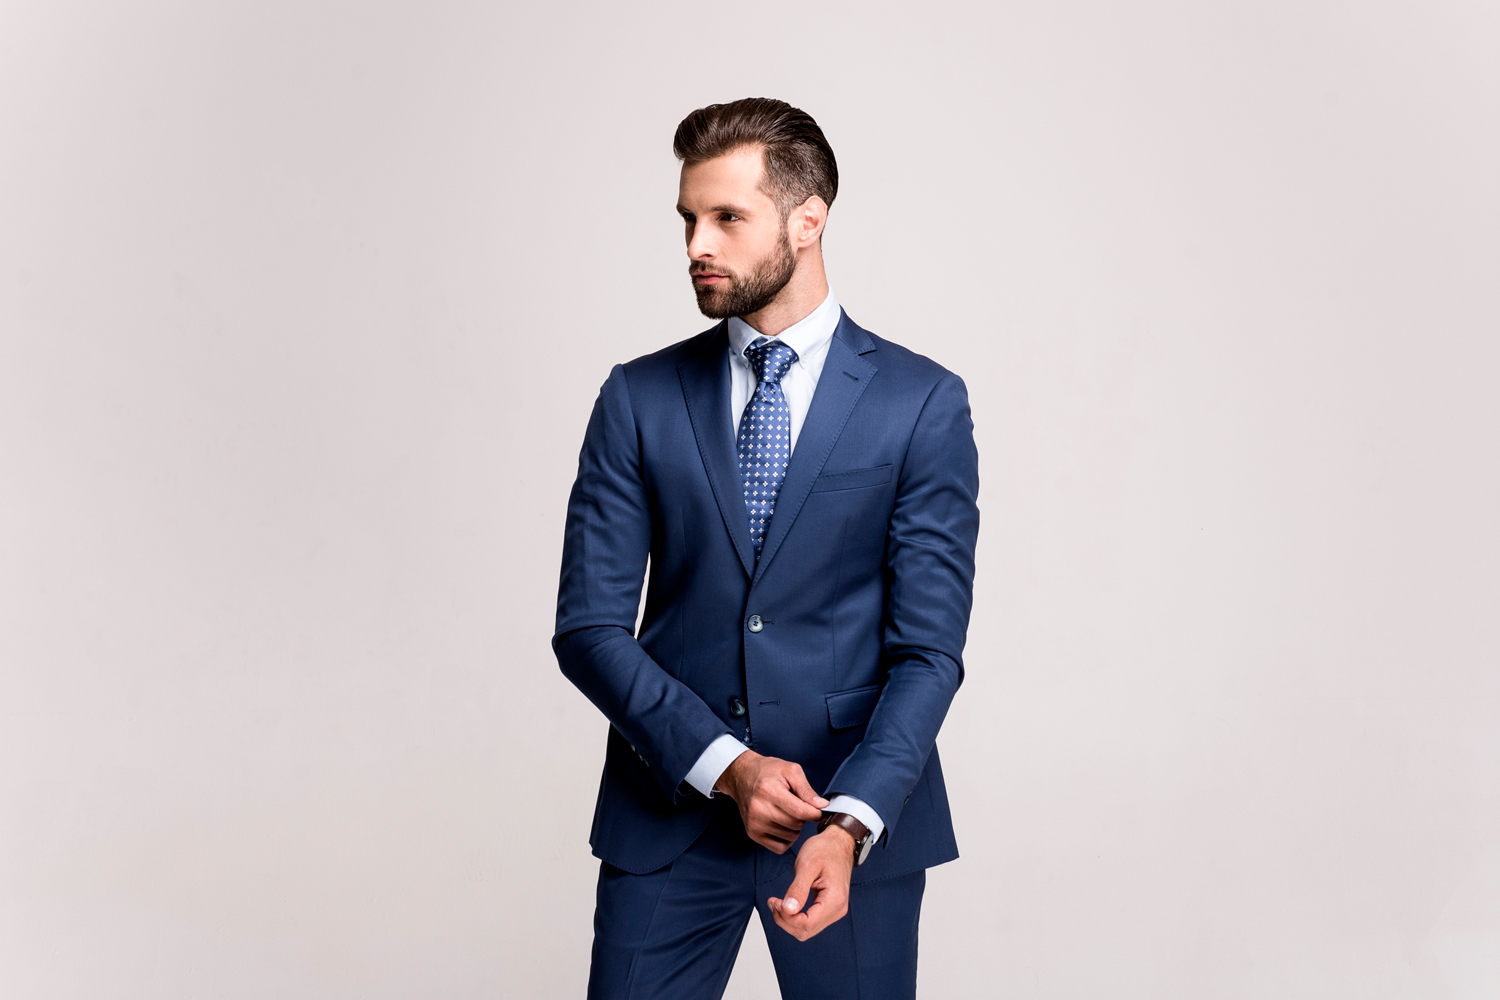 5 Ways to Wear a Navy Suit